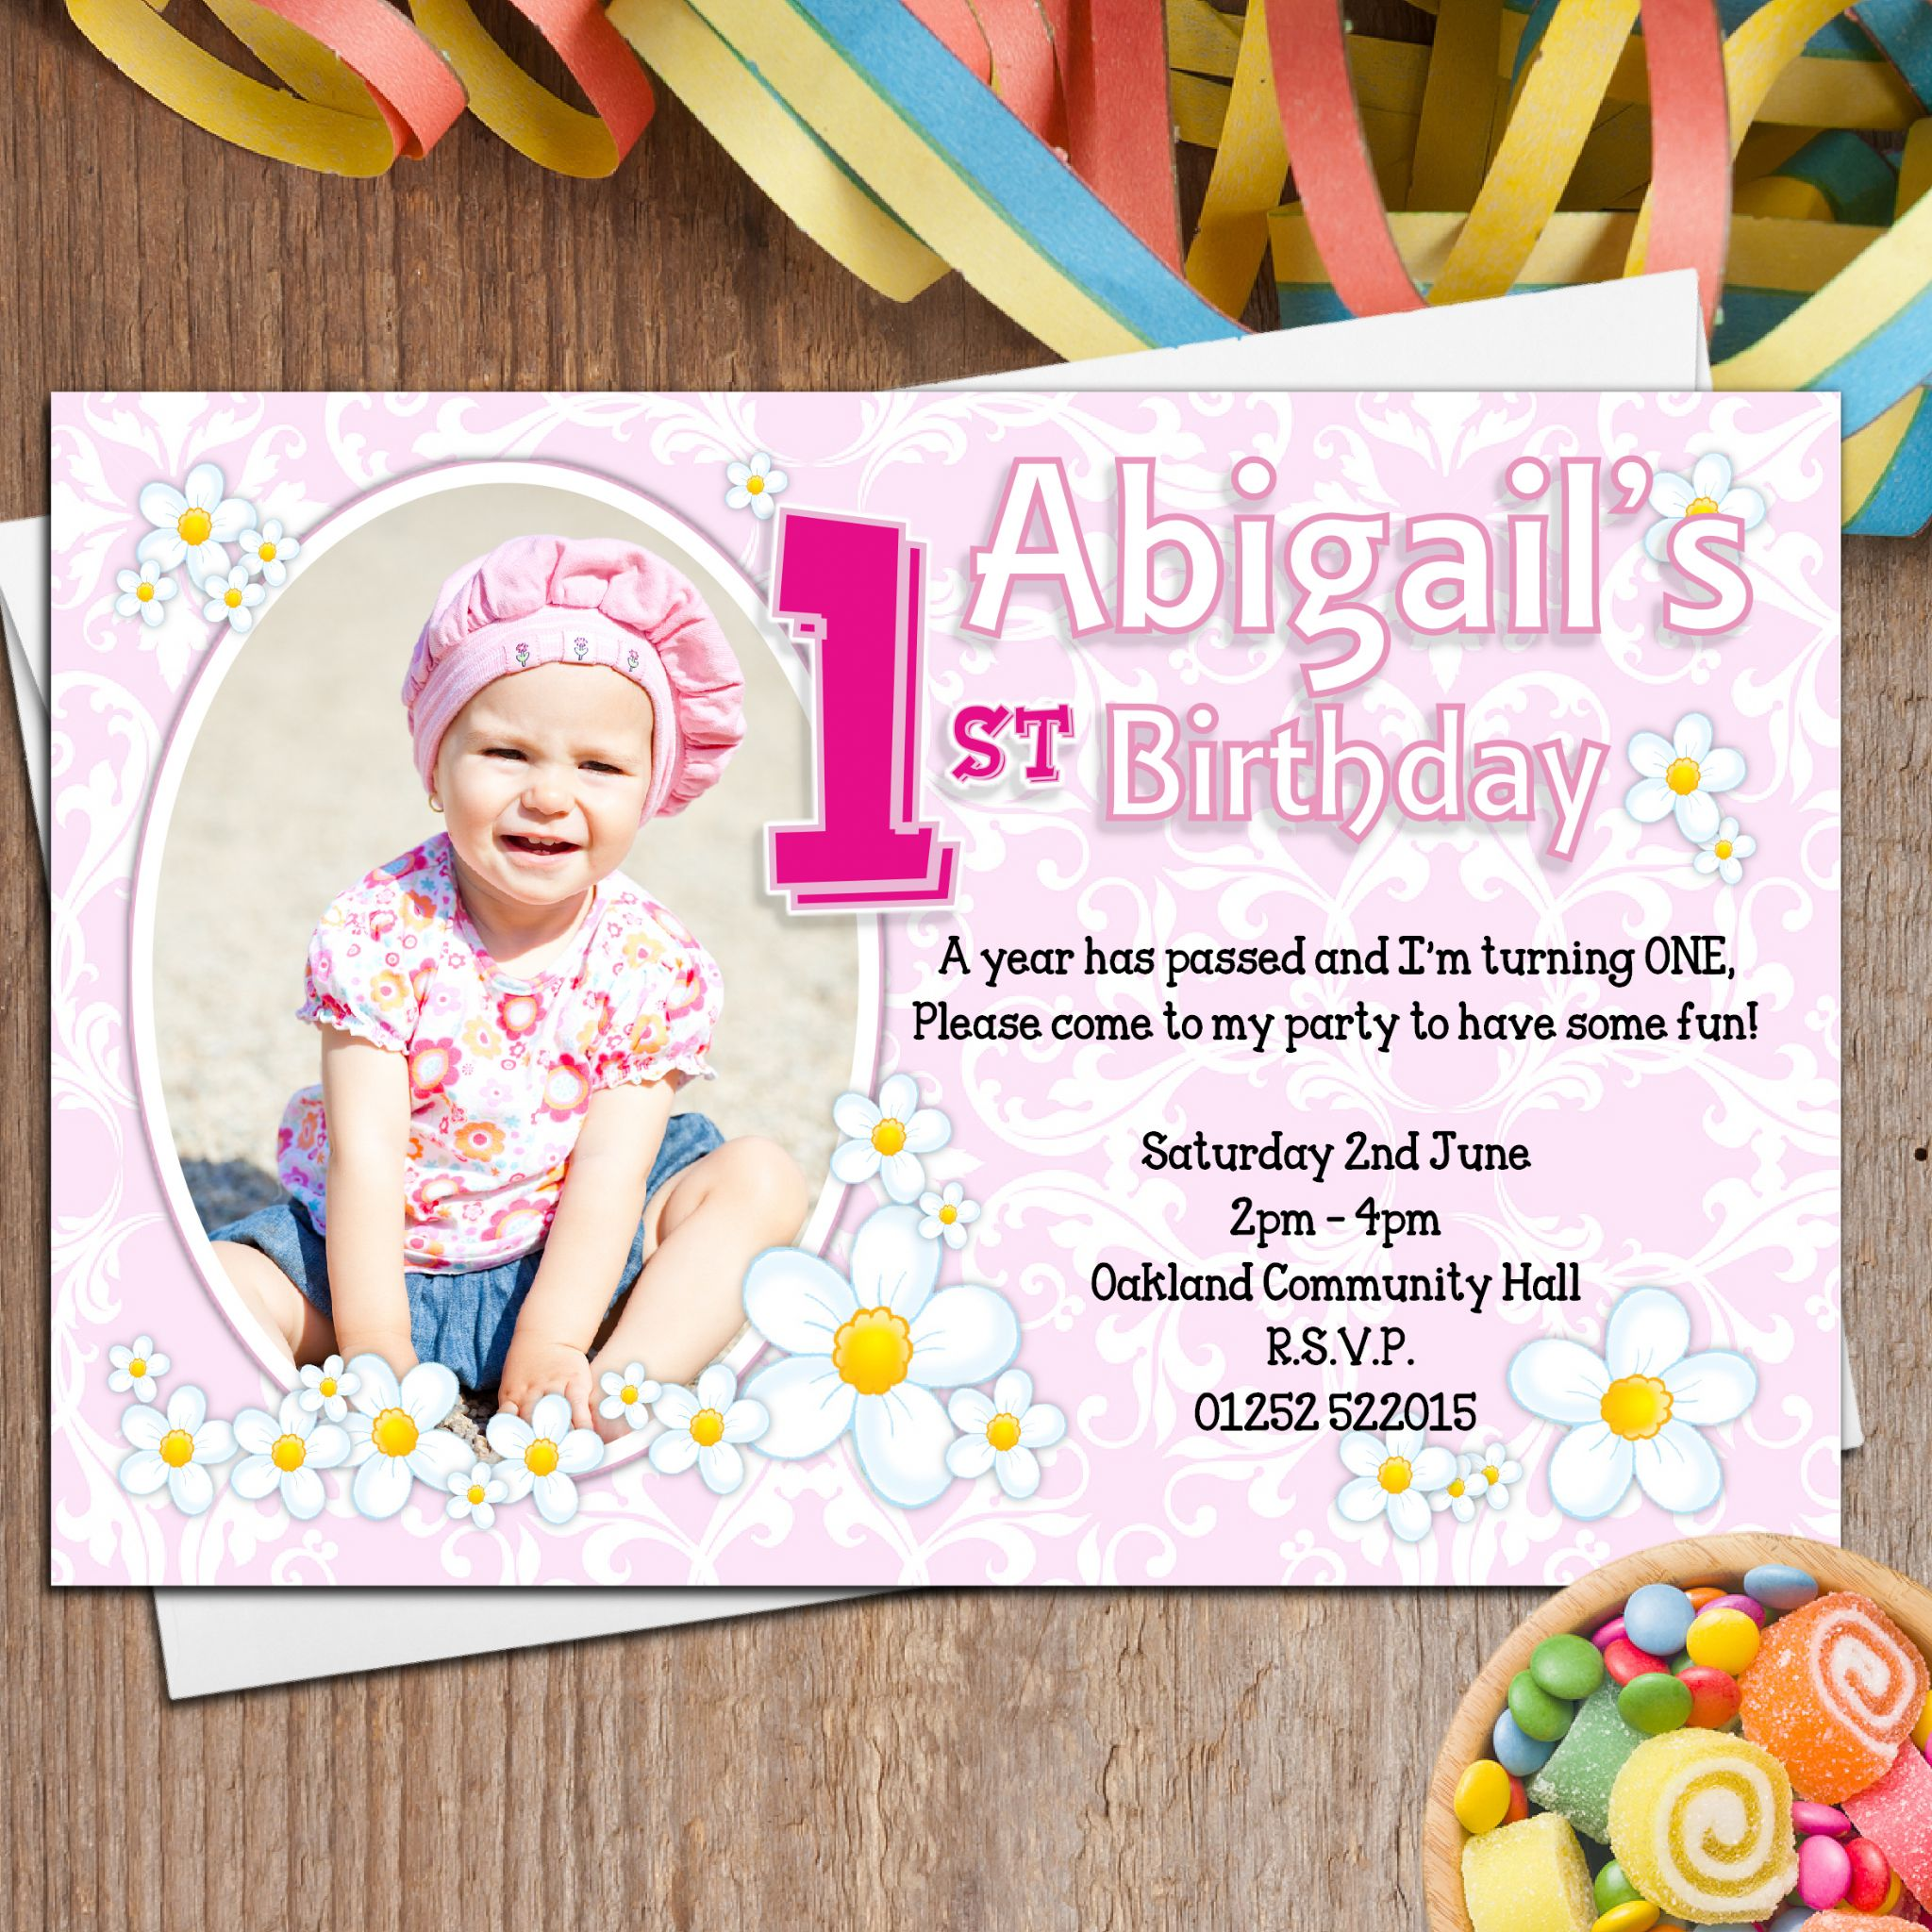 Customized birthday party invitations kordurorddiner 10 personalised girls first 1st birthday party photo invitations n27 filmwisefo